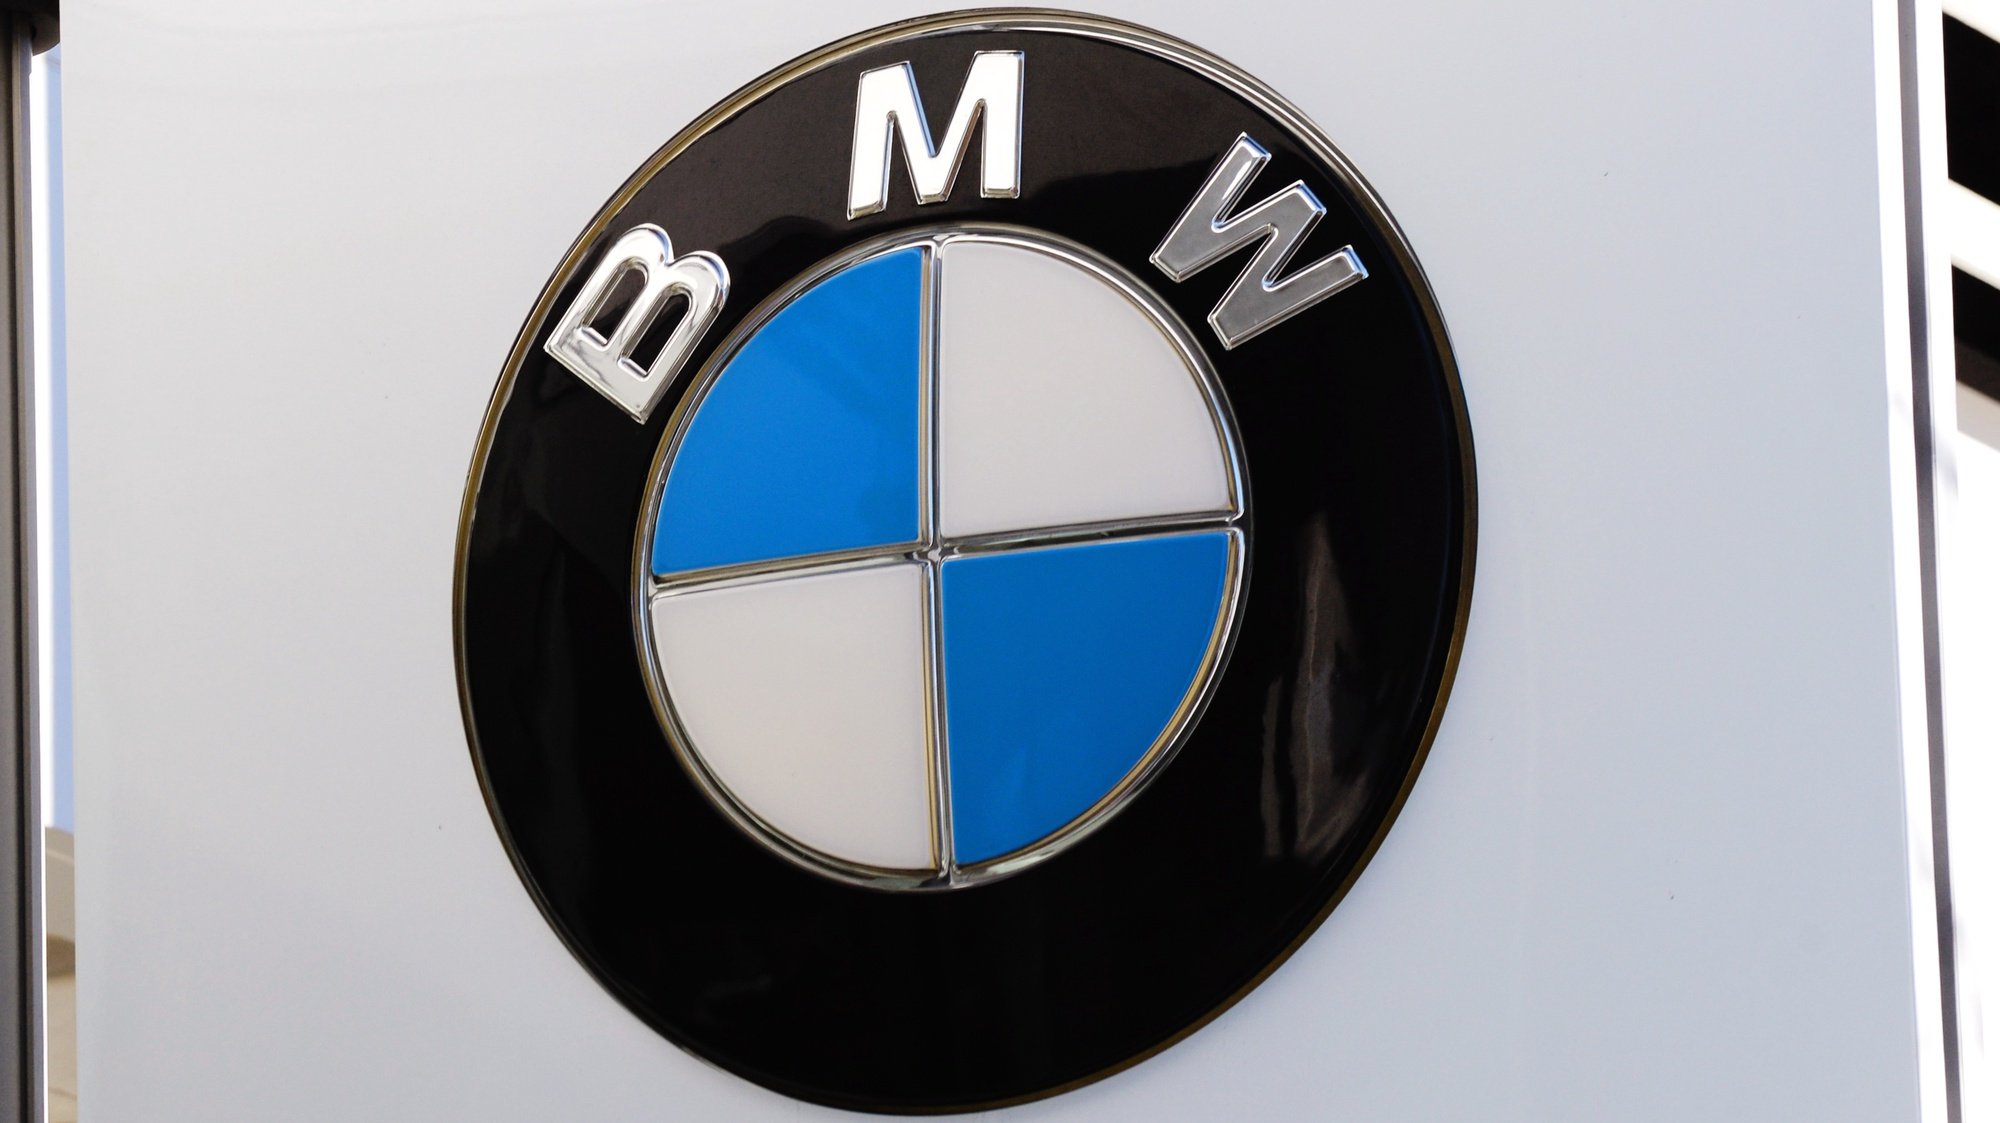 epa07486364 (FILE) - BMW company signage pictured in New York, New York, USA, 25 November 2013 (reissued 05 April 2019). Media reports on 05 April 2019 state the EU commission regulators in a statement have charged German carmakers Daimler, Volkswagen and BMW of collusion in the area of emissions cleaning technology by 'participating in a collusive scheme, in breach of EU competition rules, to limit the development and roll-out of emission-cleaning technology for new diesel and petrol passenger cars sold in the European Economic Area'.  EPA/PETER FOLEY